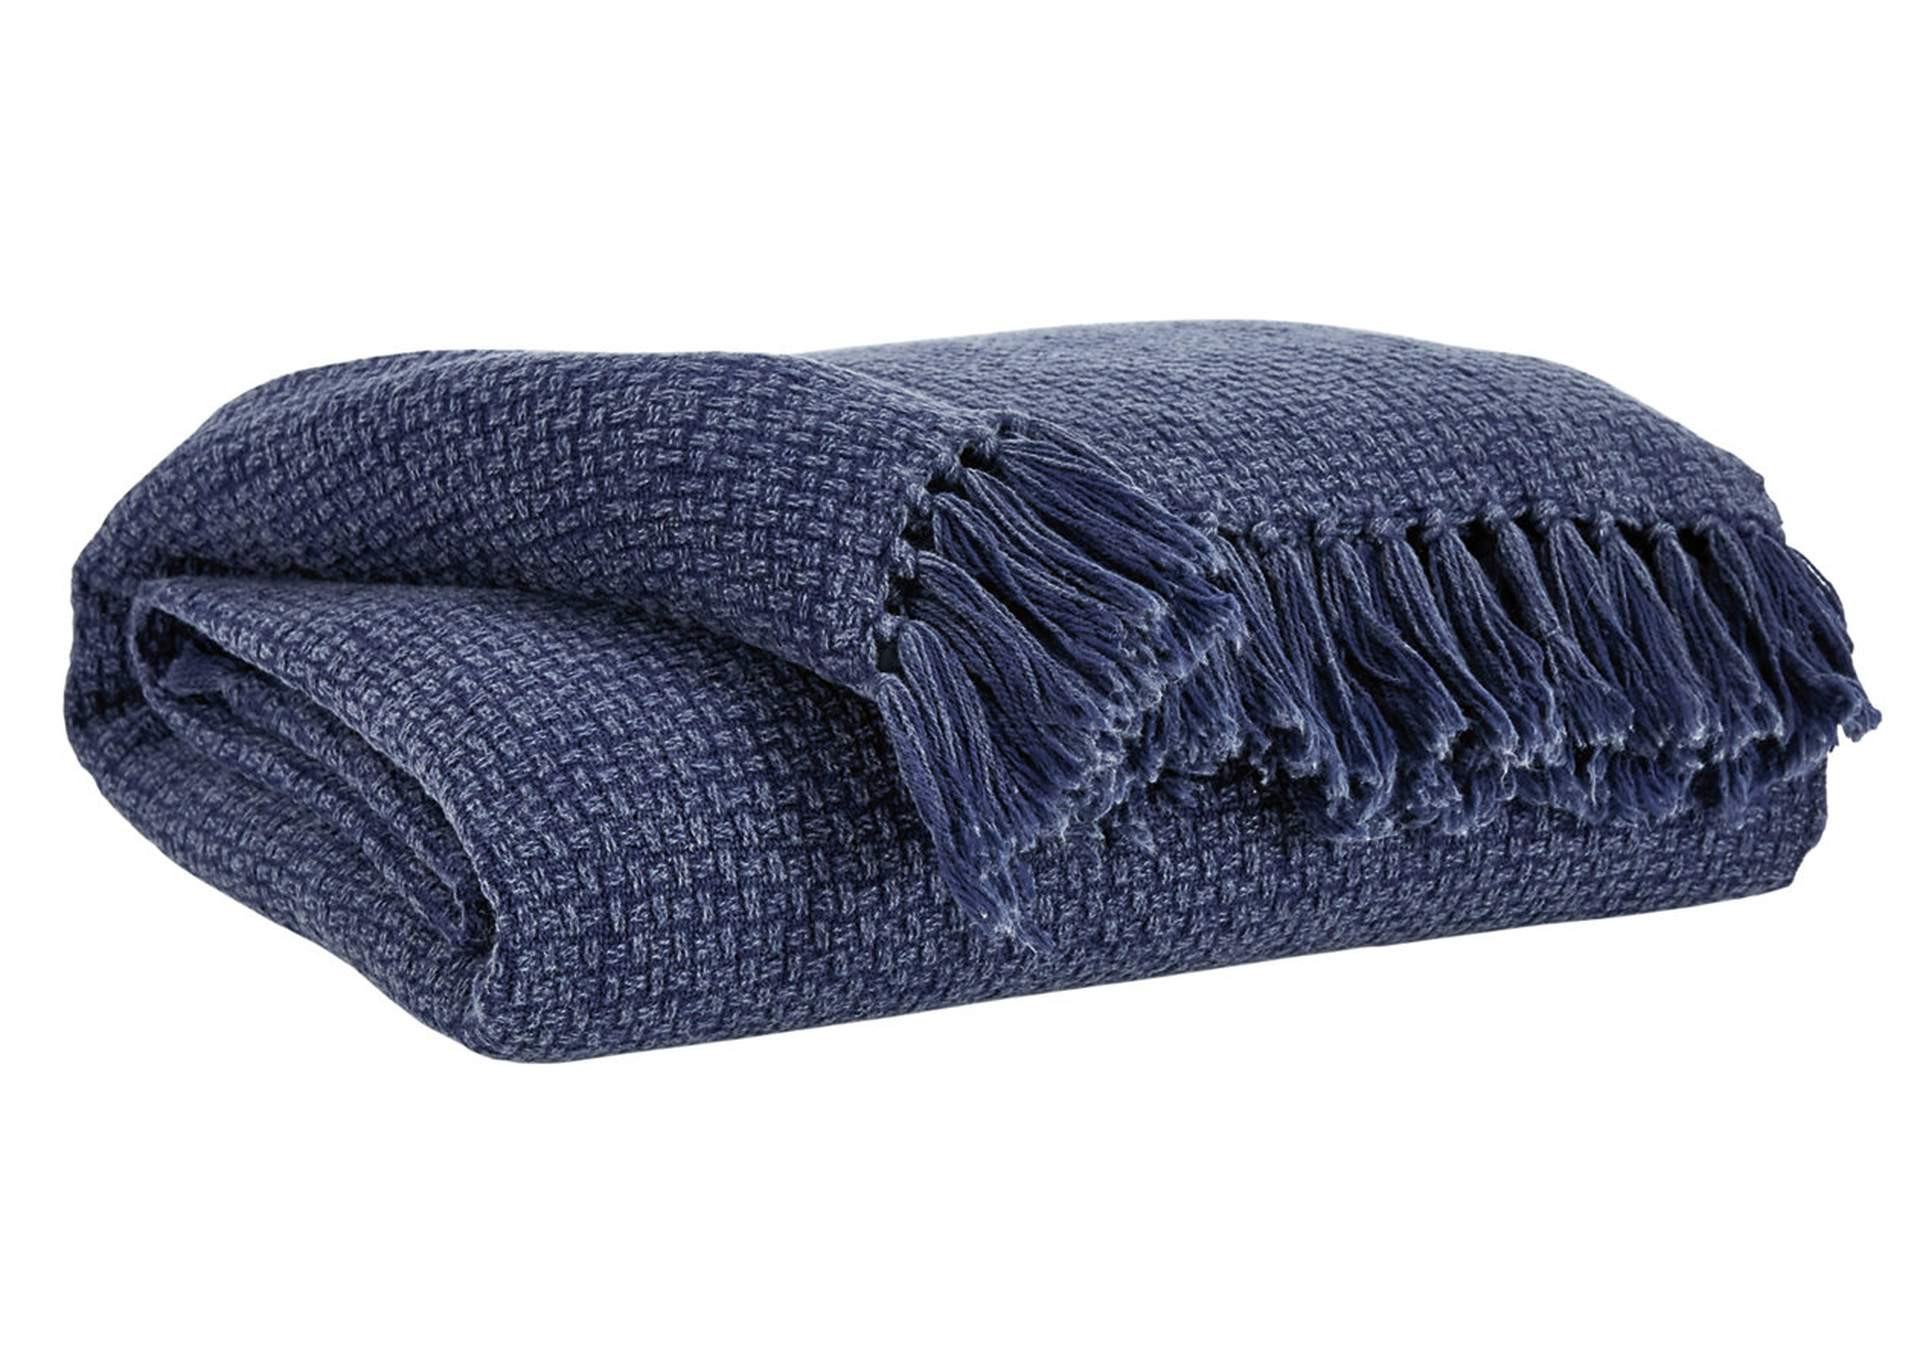 Yasmin Blue Throw,Signature Design By Ashley